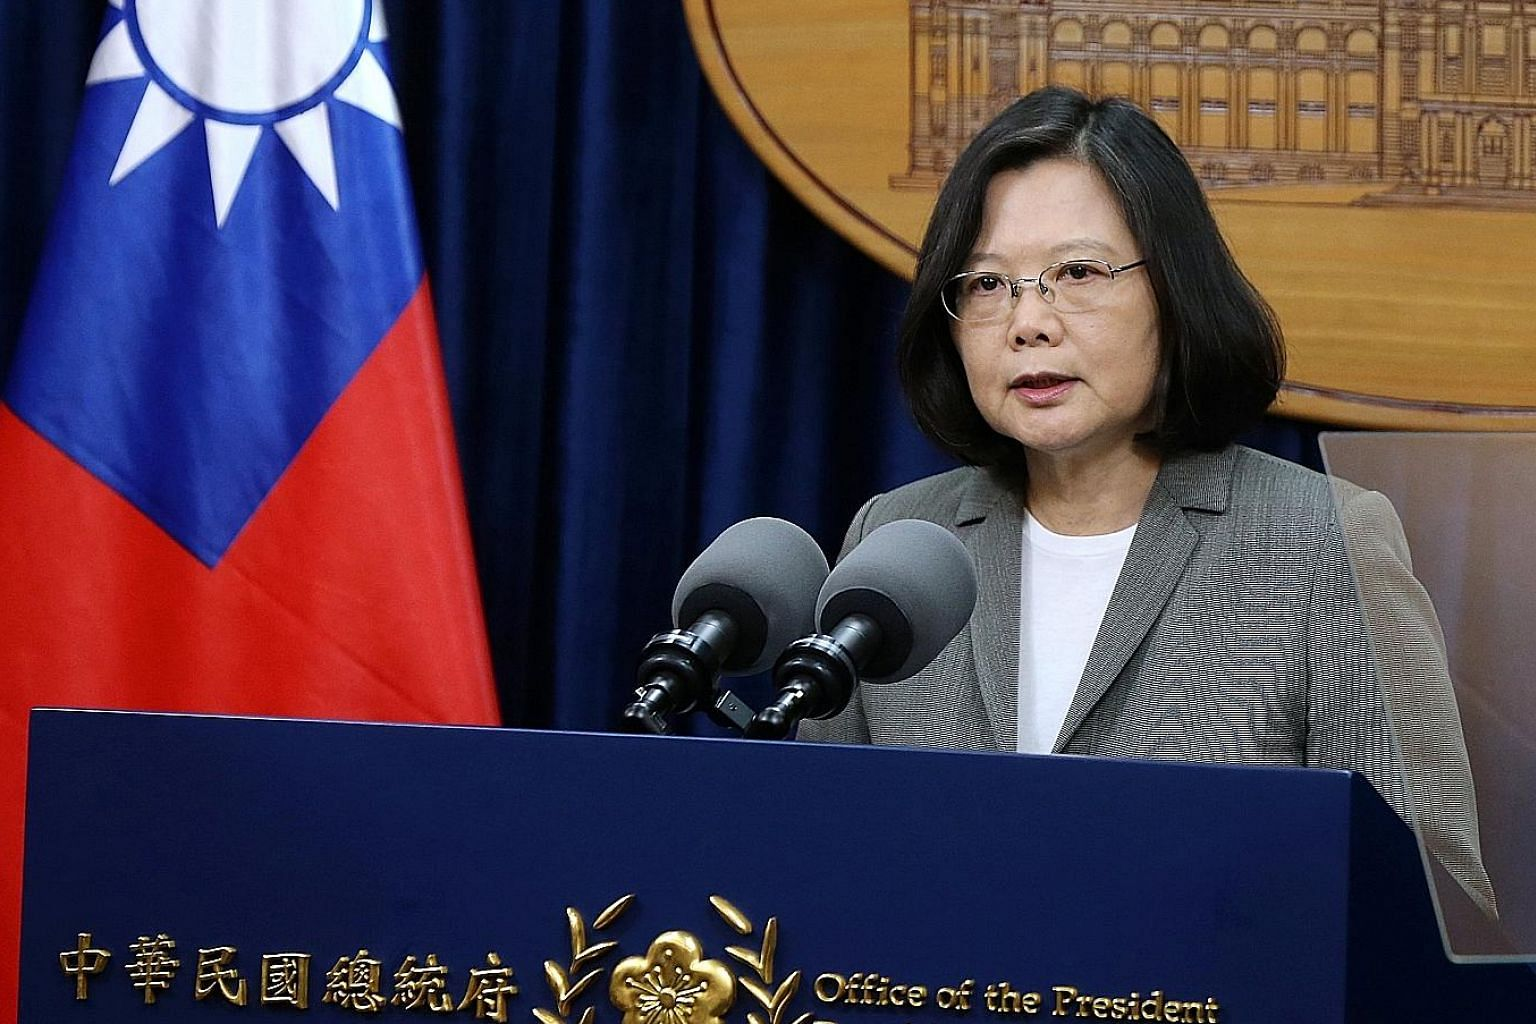 """Taiwanese President Tsai Ing-wen called Panama's move """"unacceptable for the Taiwanese people""""."""